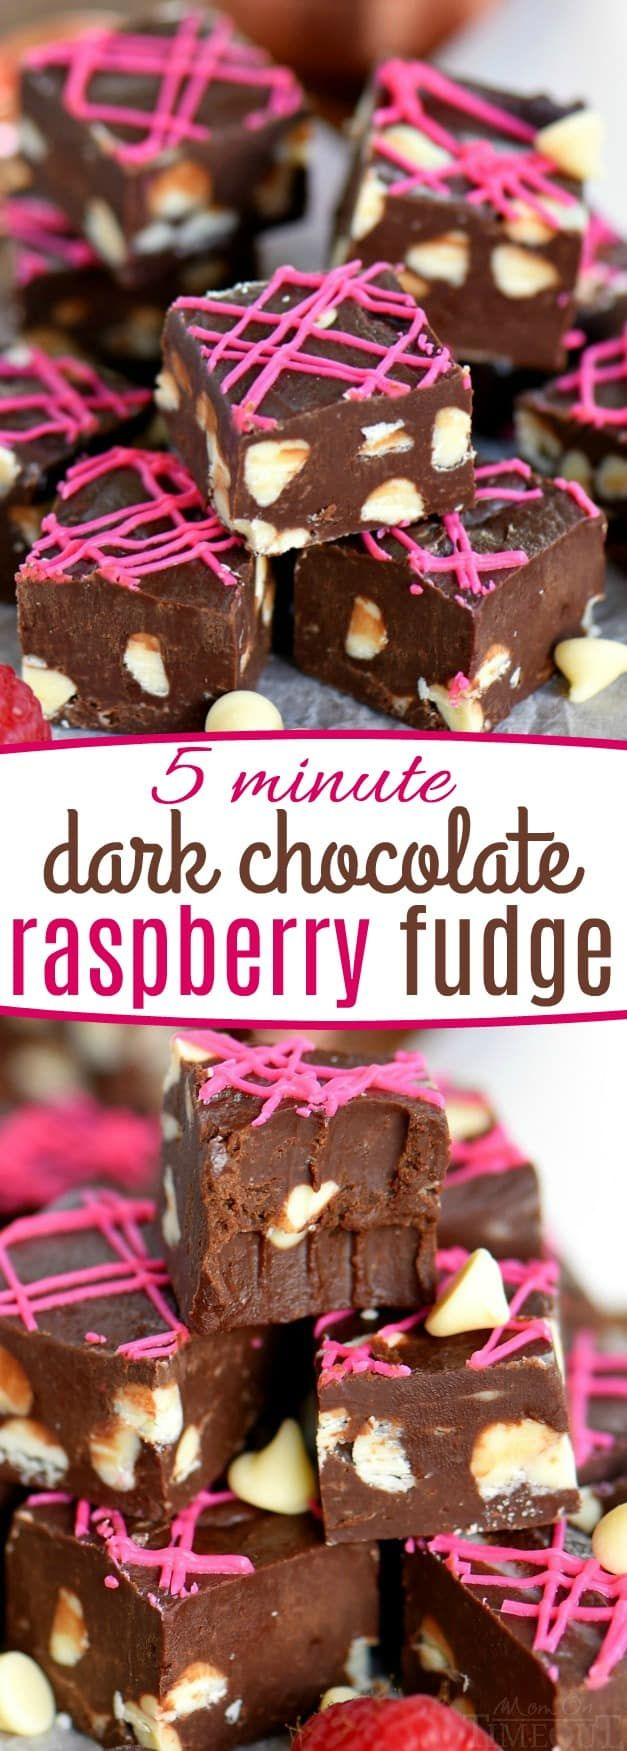 Photo of 5 Minute Dark Chocolate Raspberry Fudge Recipe